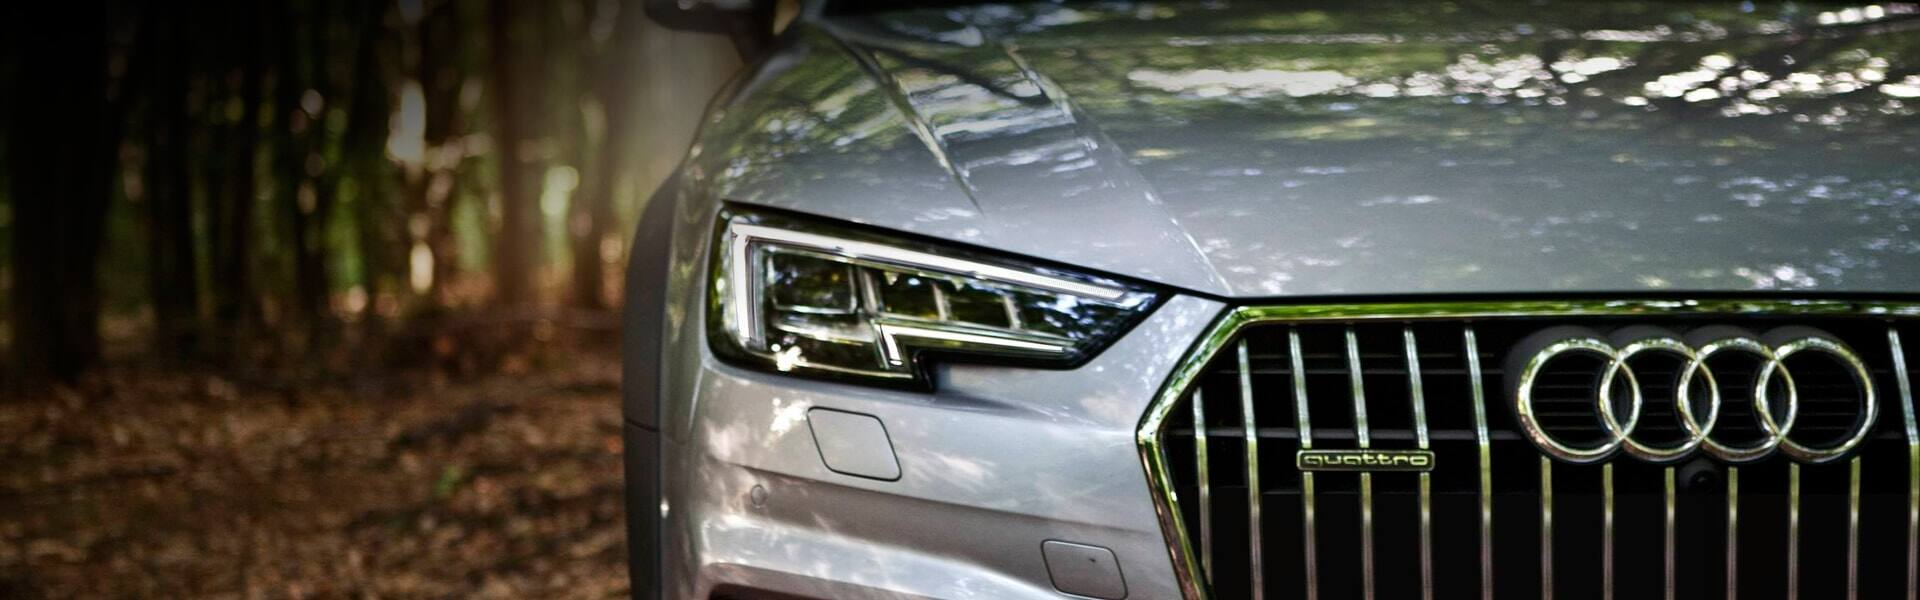 The A4 allroad